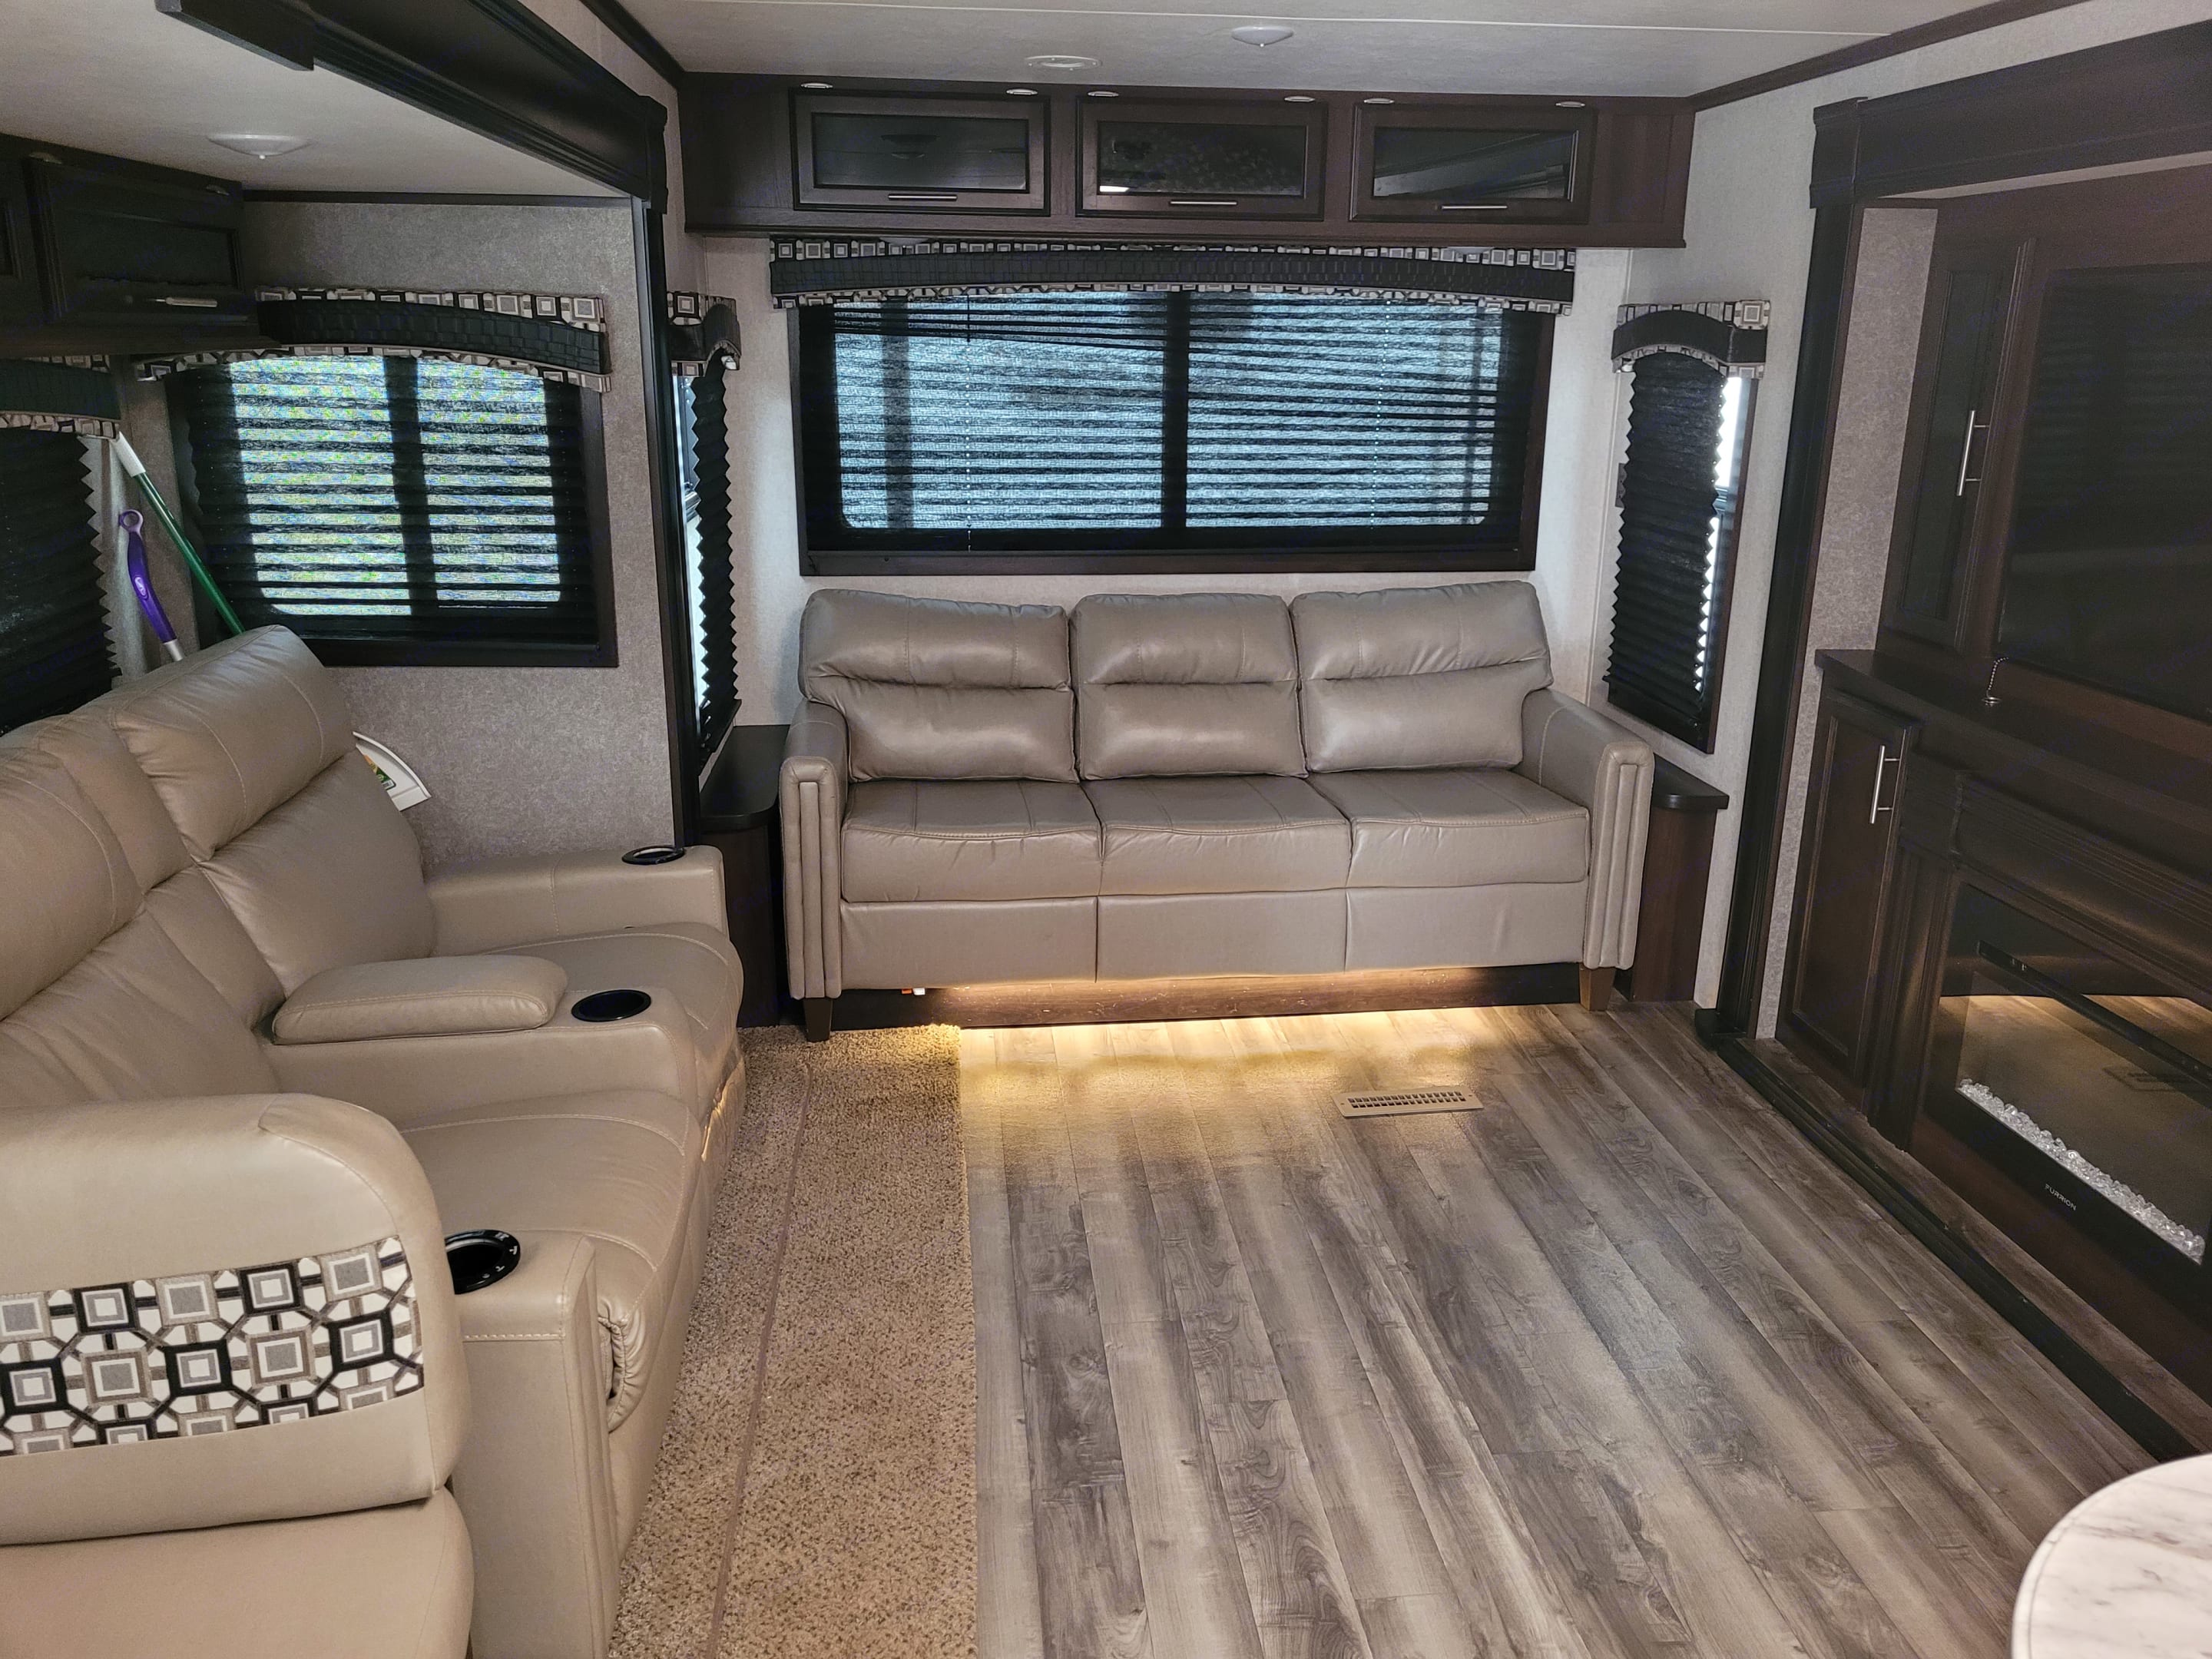 Living room with reclining chairs, sofa converts into full size bed, big screen TV, sound system, electric fireplace. Jayco Jay Flight 2019